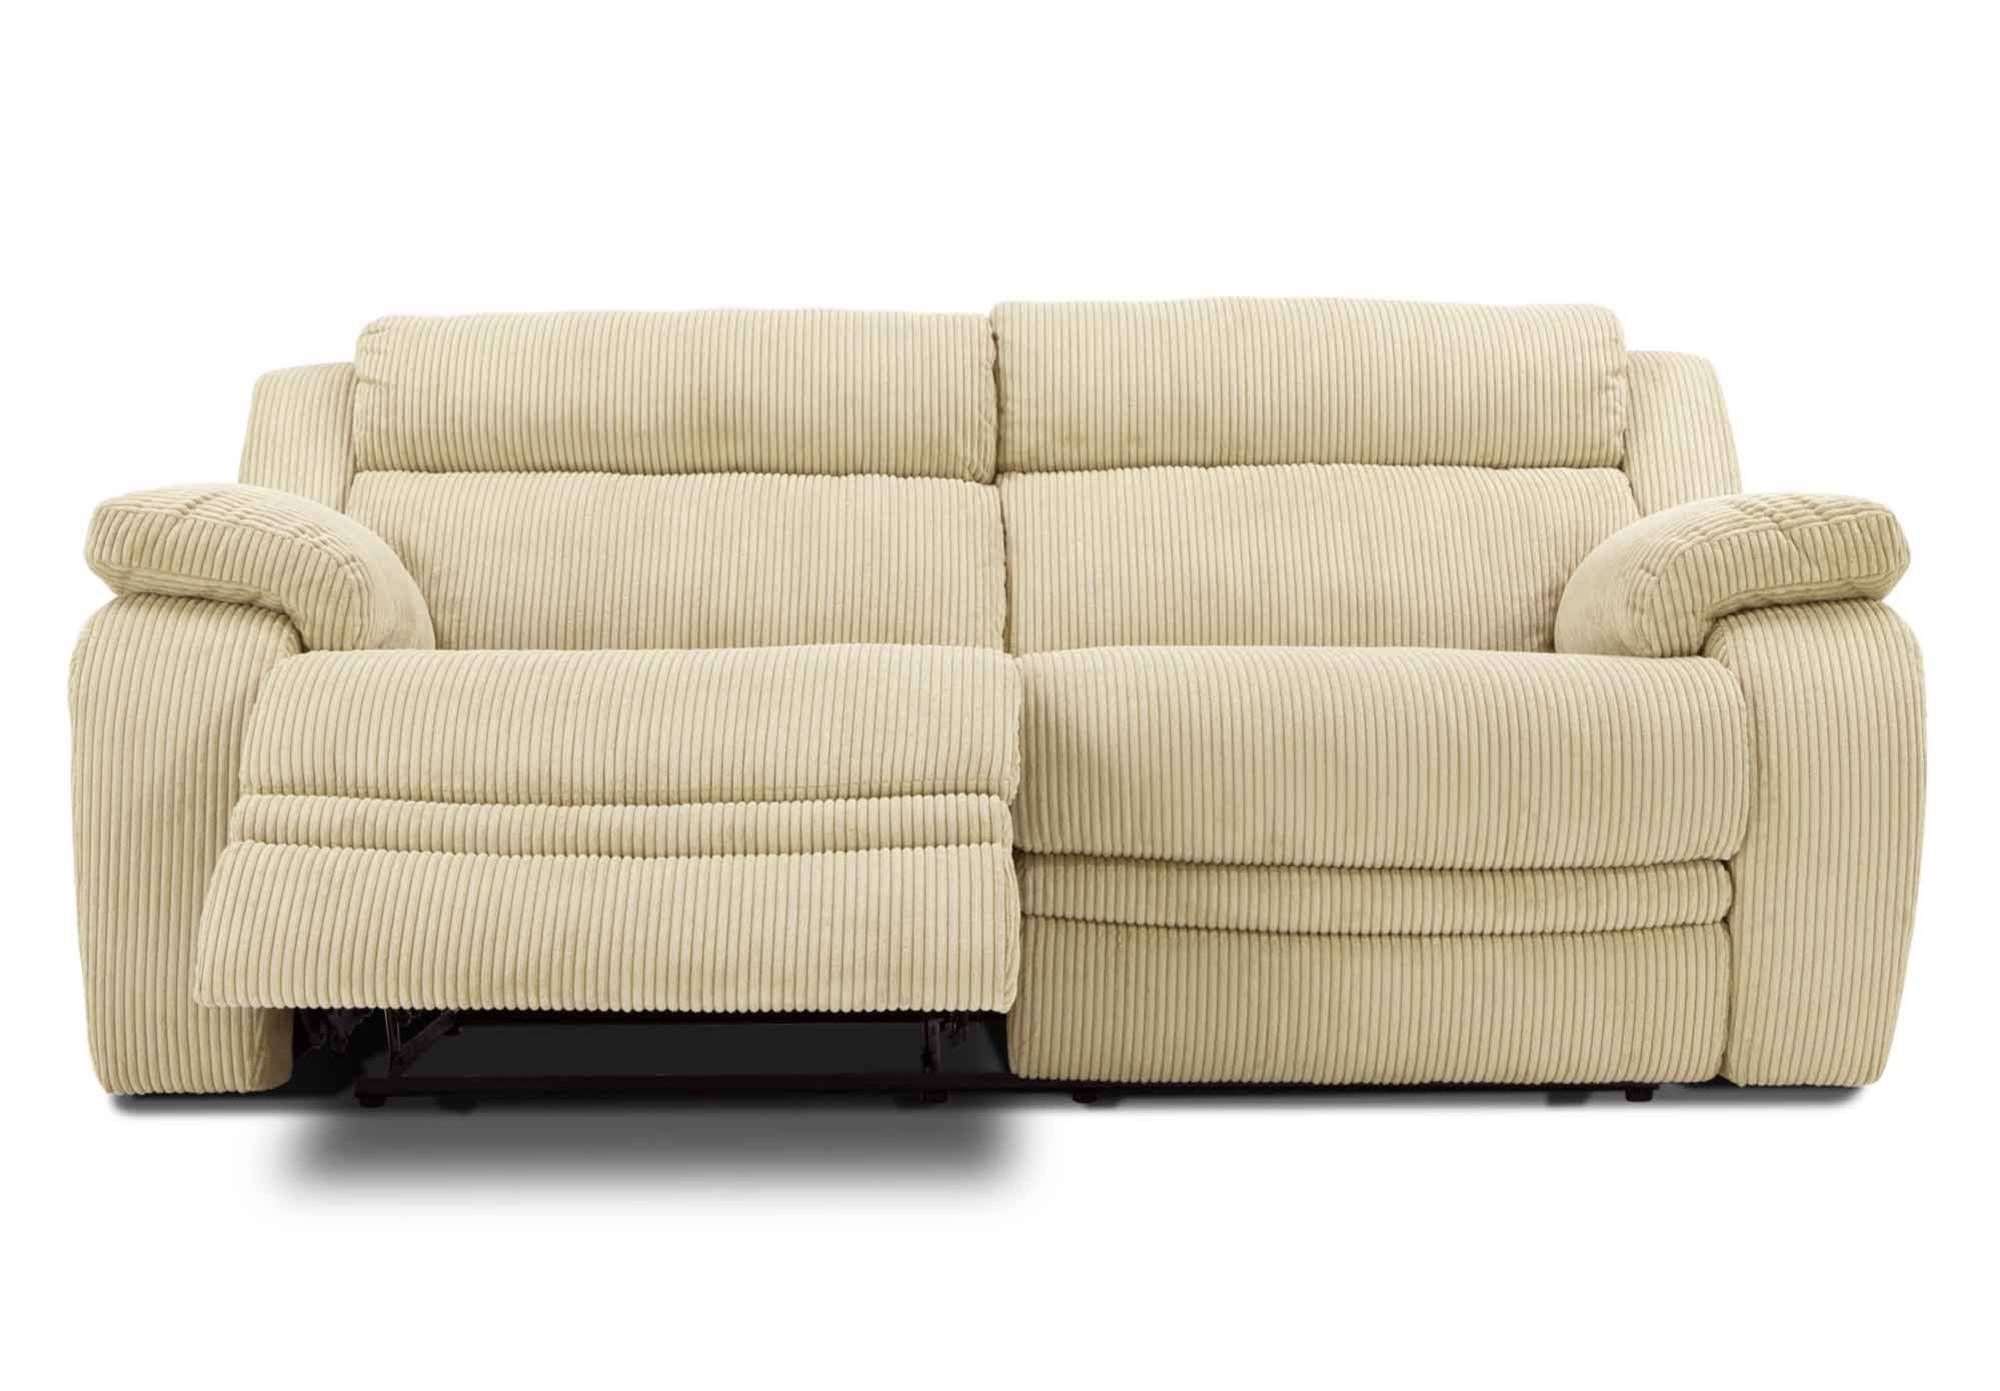 Sofas Center : Modern Reclining Sofa Sand Microfiber Seater intended for 2 Seat Recliner Sofas (Image 21 of 30)